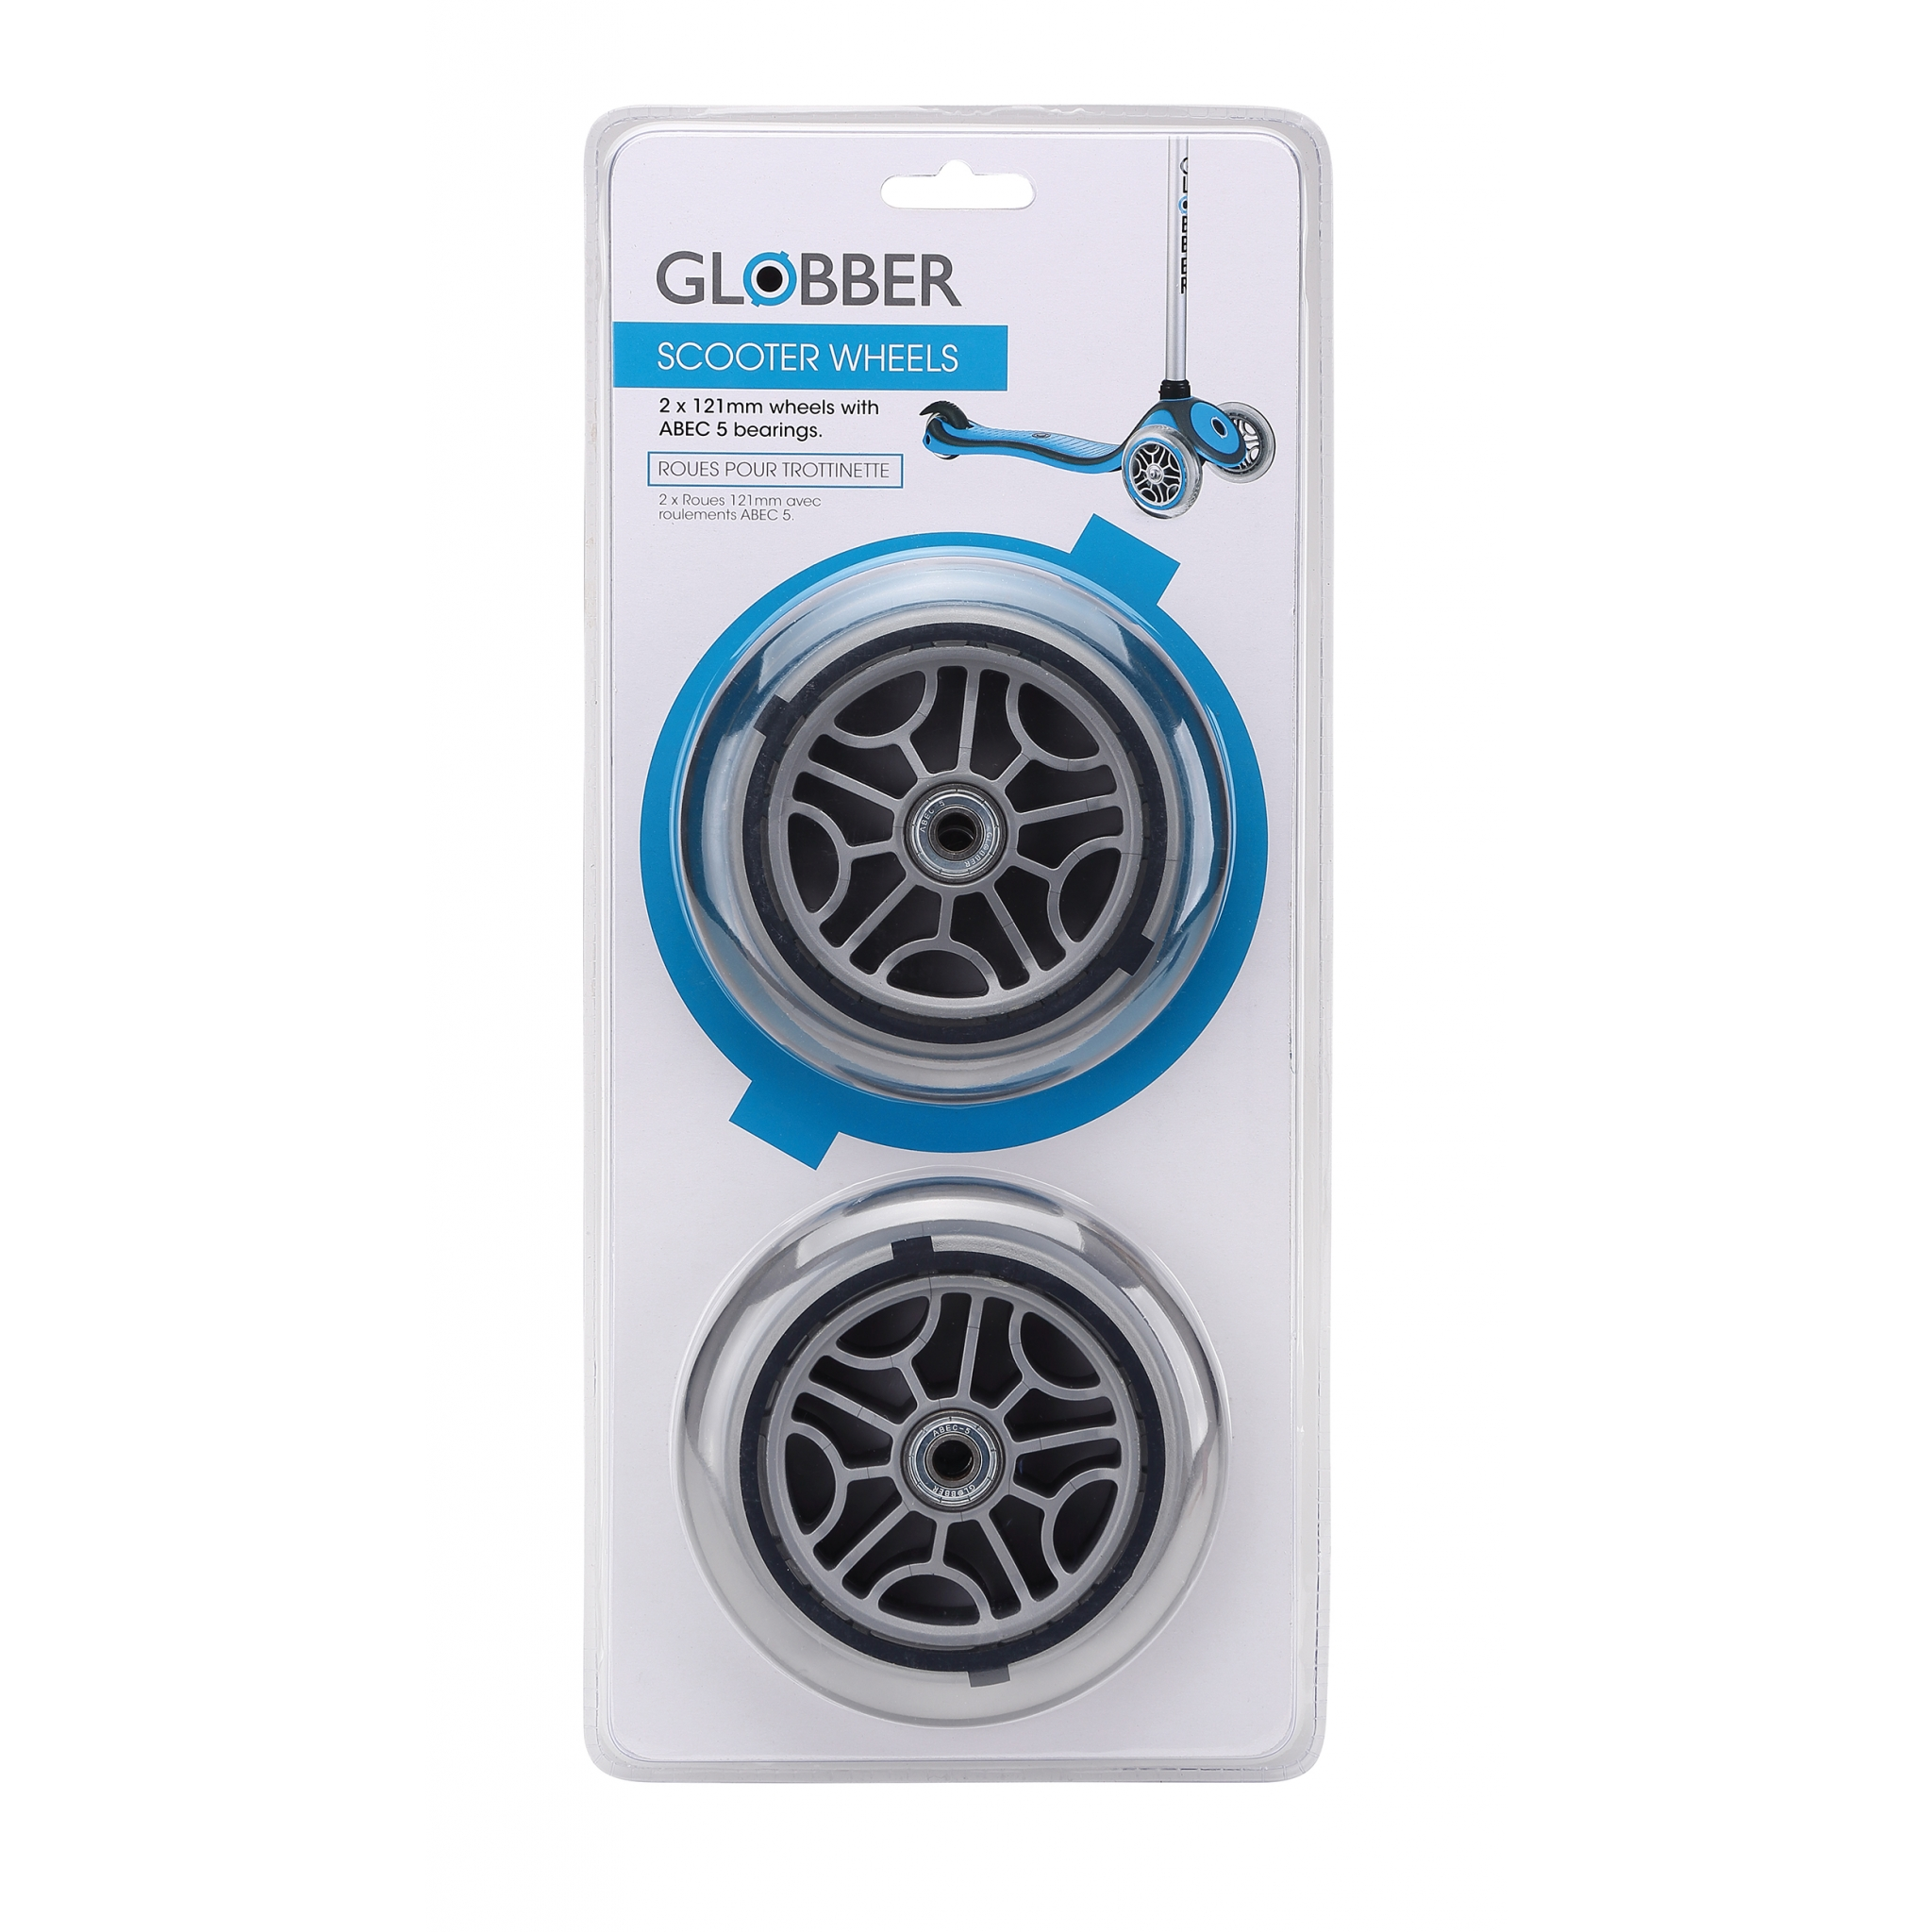 scooter front wheel for Globber GO-UP, PRIMO and FLOW scooters